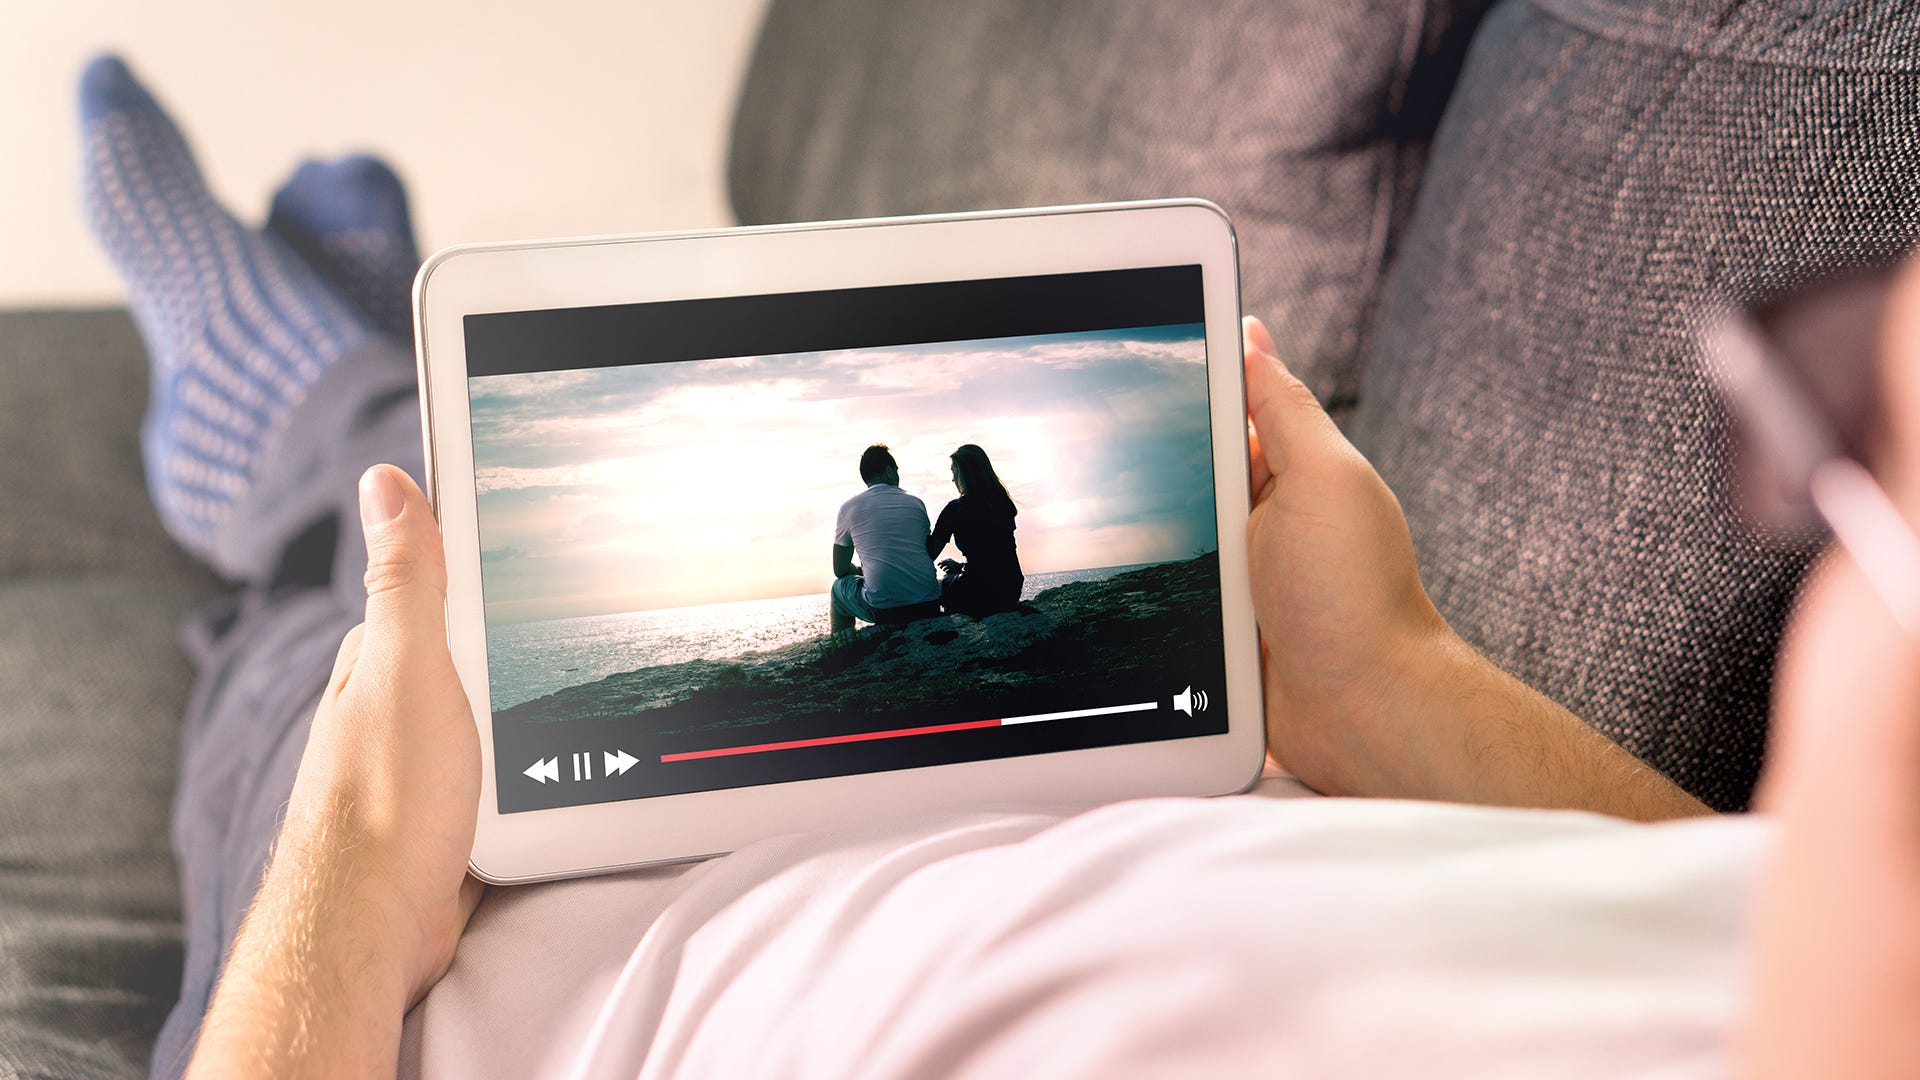 New Hindi Movei 2018 2019 Bolliwood: 5 Ways To Watch Video With Your Long-Distance Friends